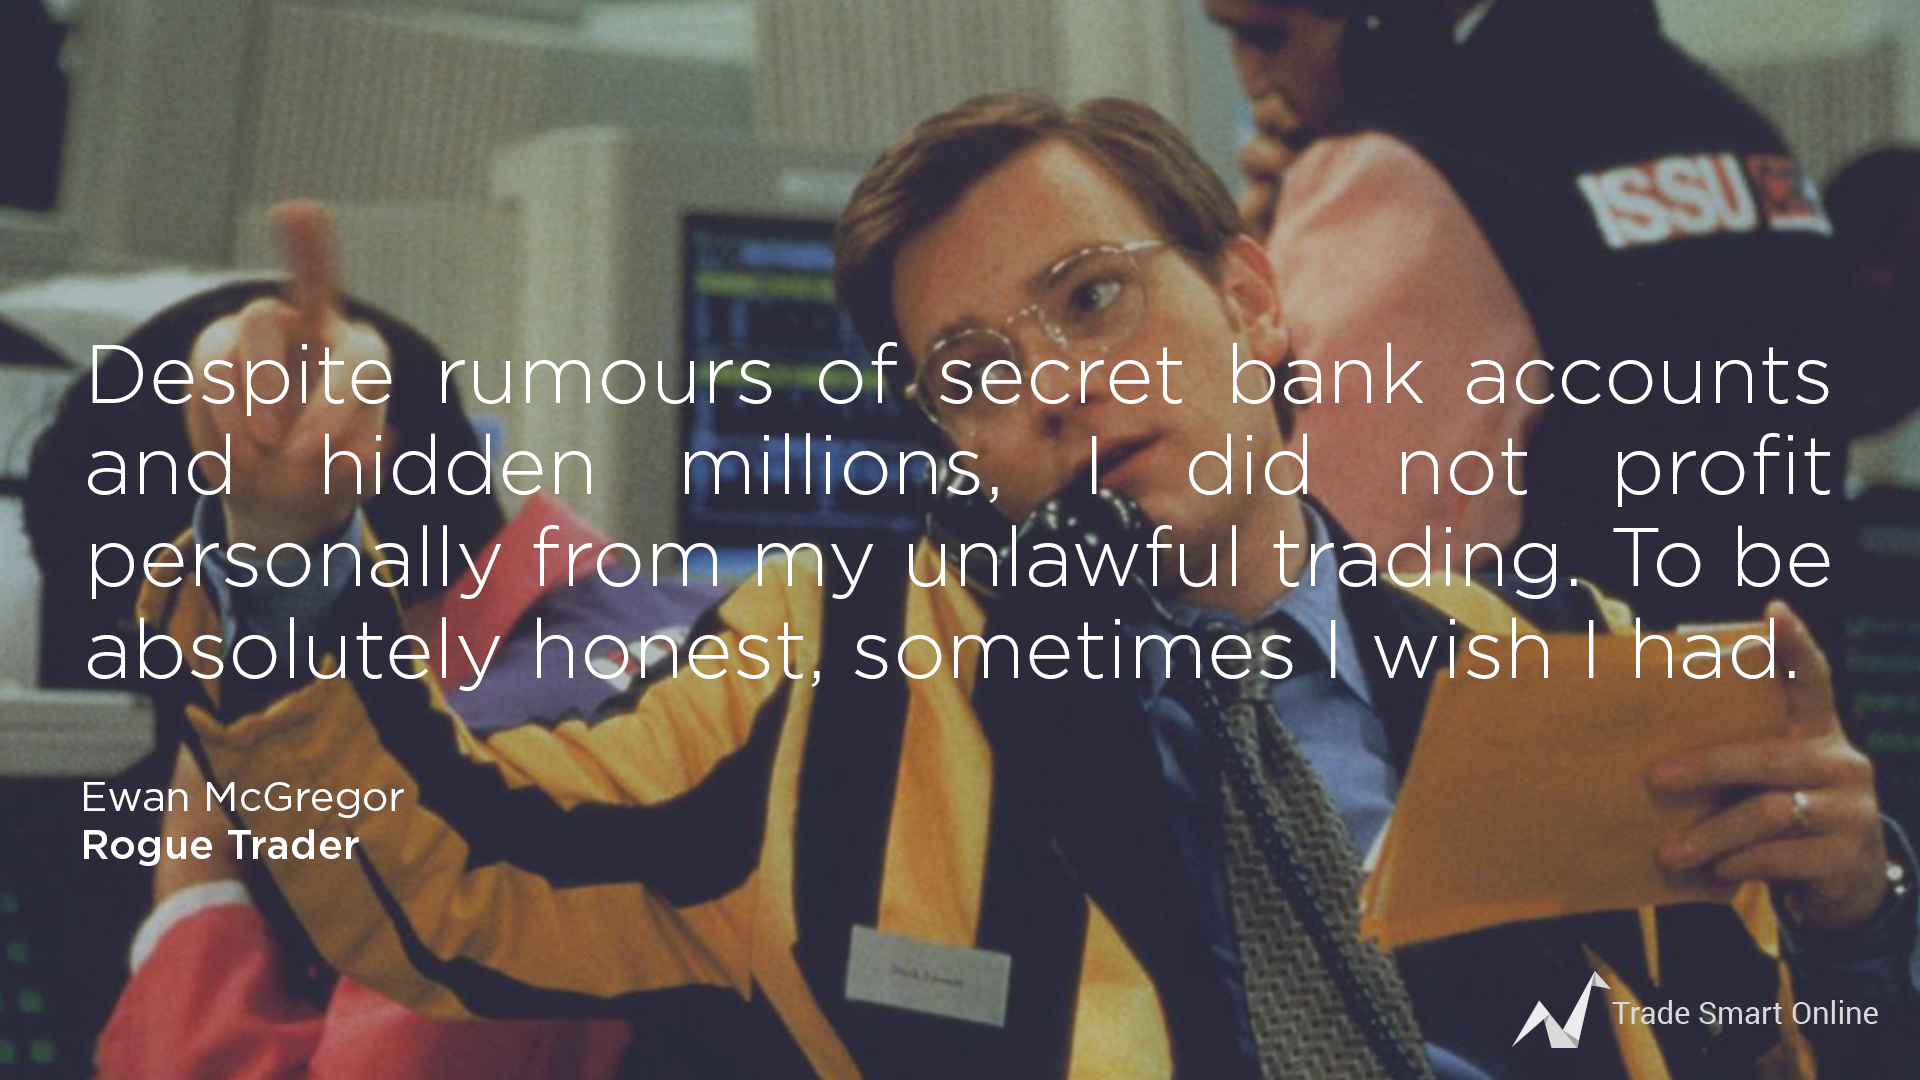 nick leeson - 10 Best Movies on Trading And Stock Market